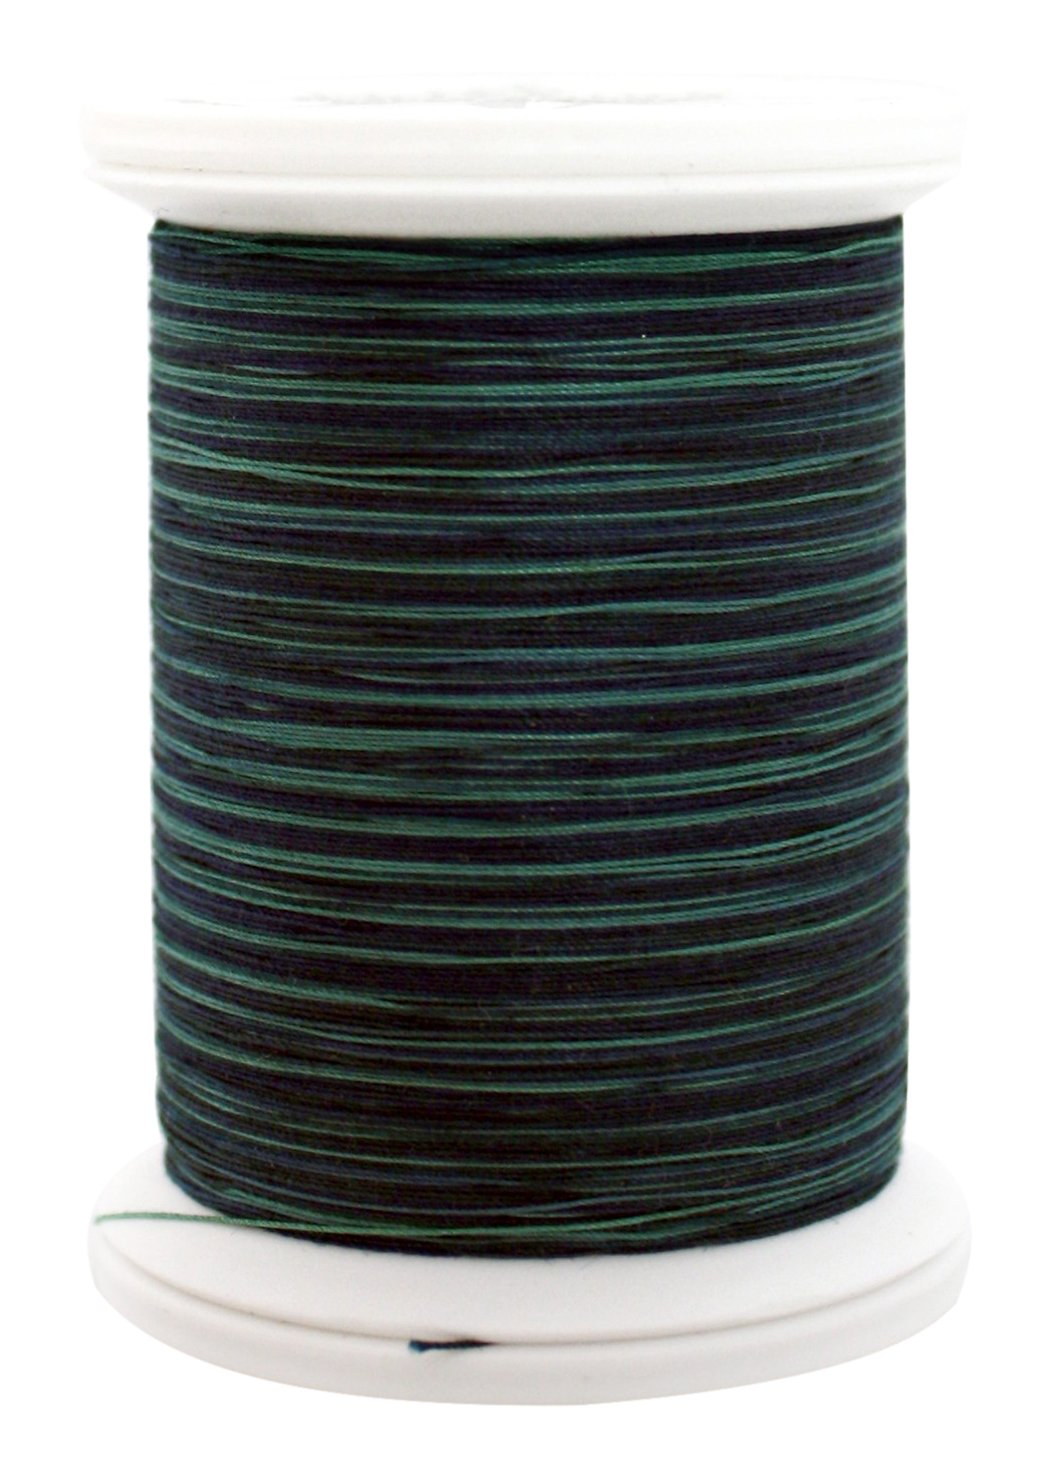 YLI 24450-V76 3-Ply 40wt T-40 Cotton Quilting Variegated Thread 500 yd Kyoto Garden